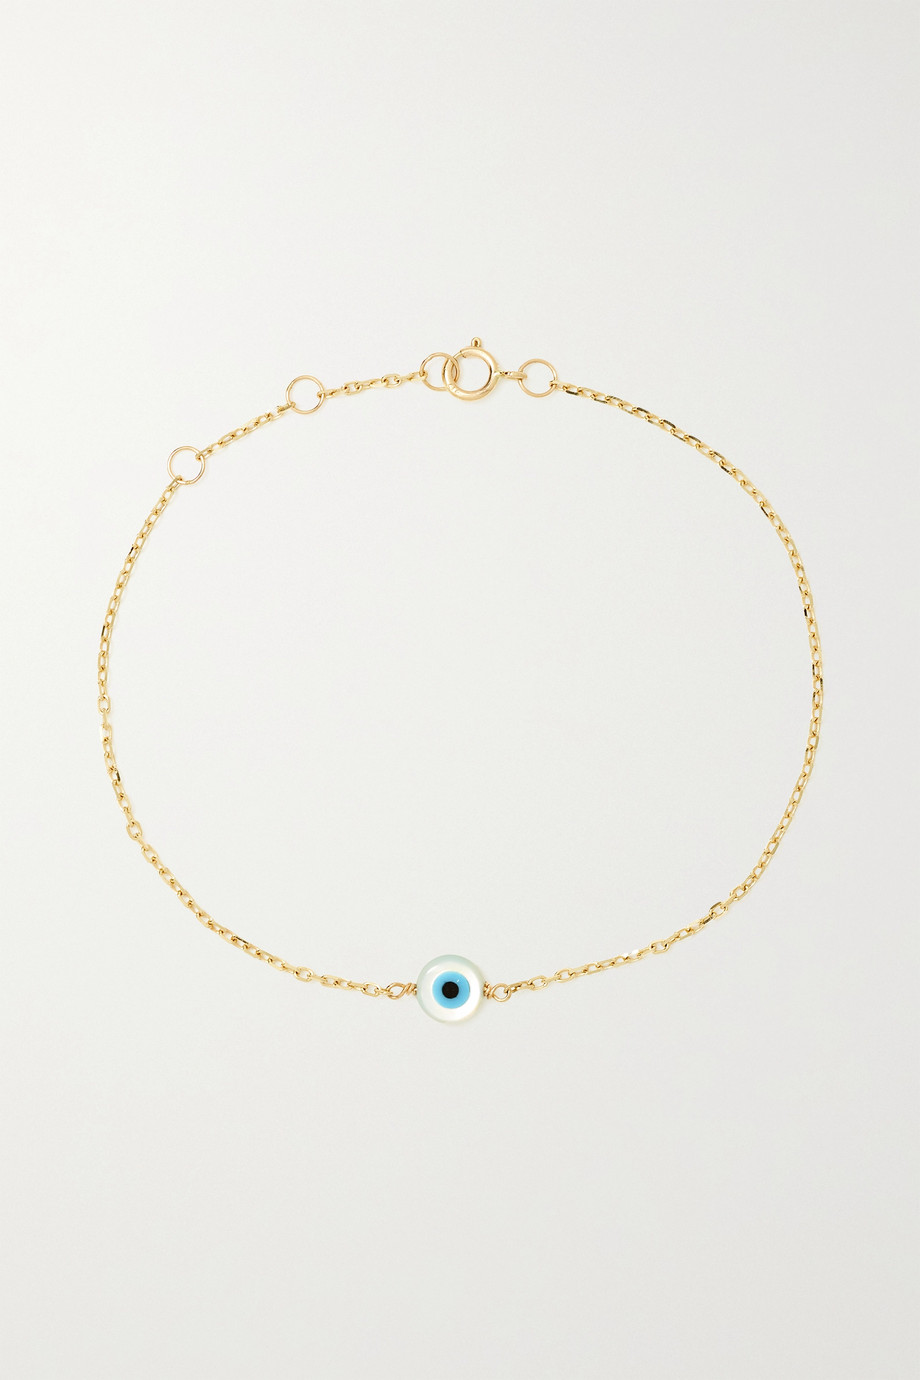 STONE AND STRAND Gold, mother-of-pearl and enamel bracelet